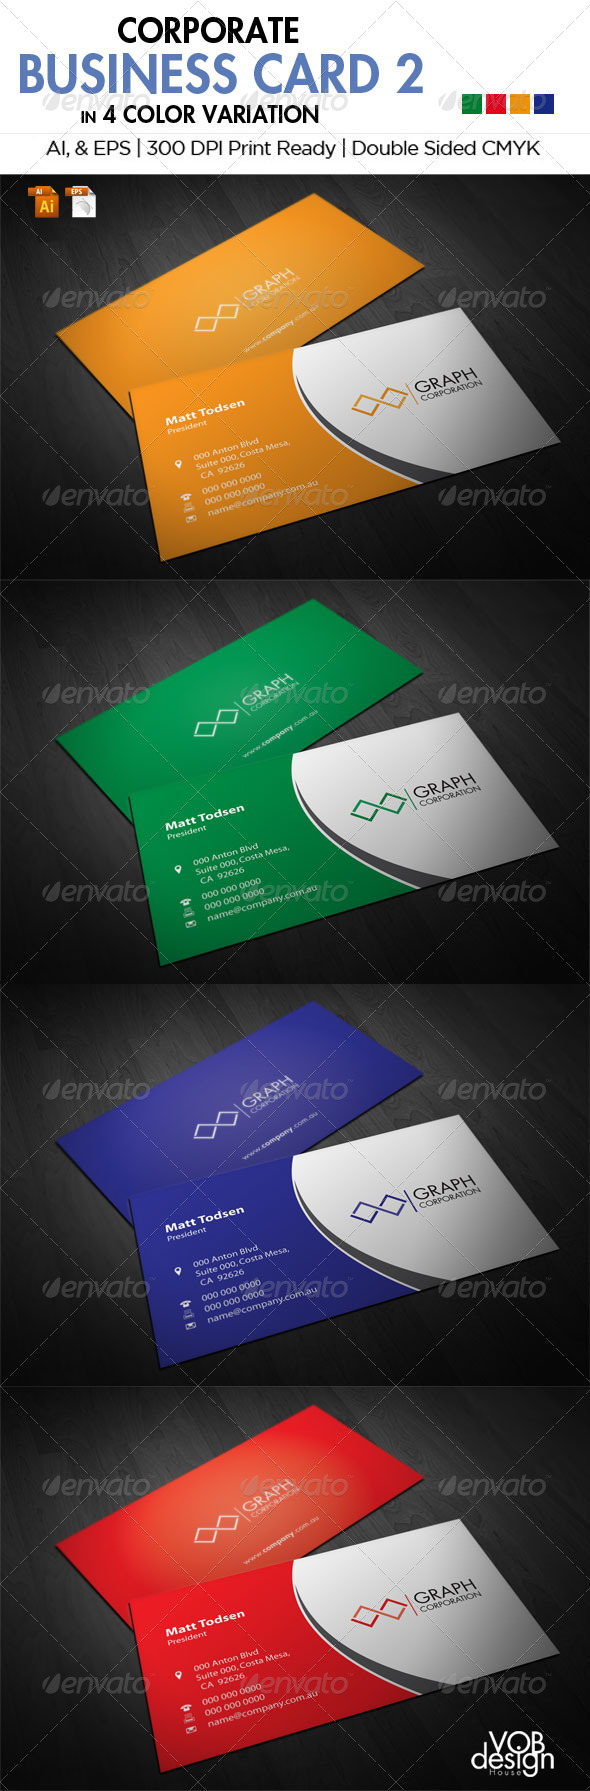 Corporate Business Card 2 - Creative Business Cards